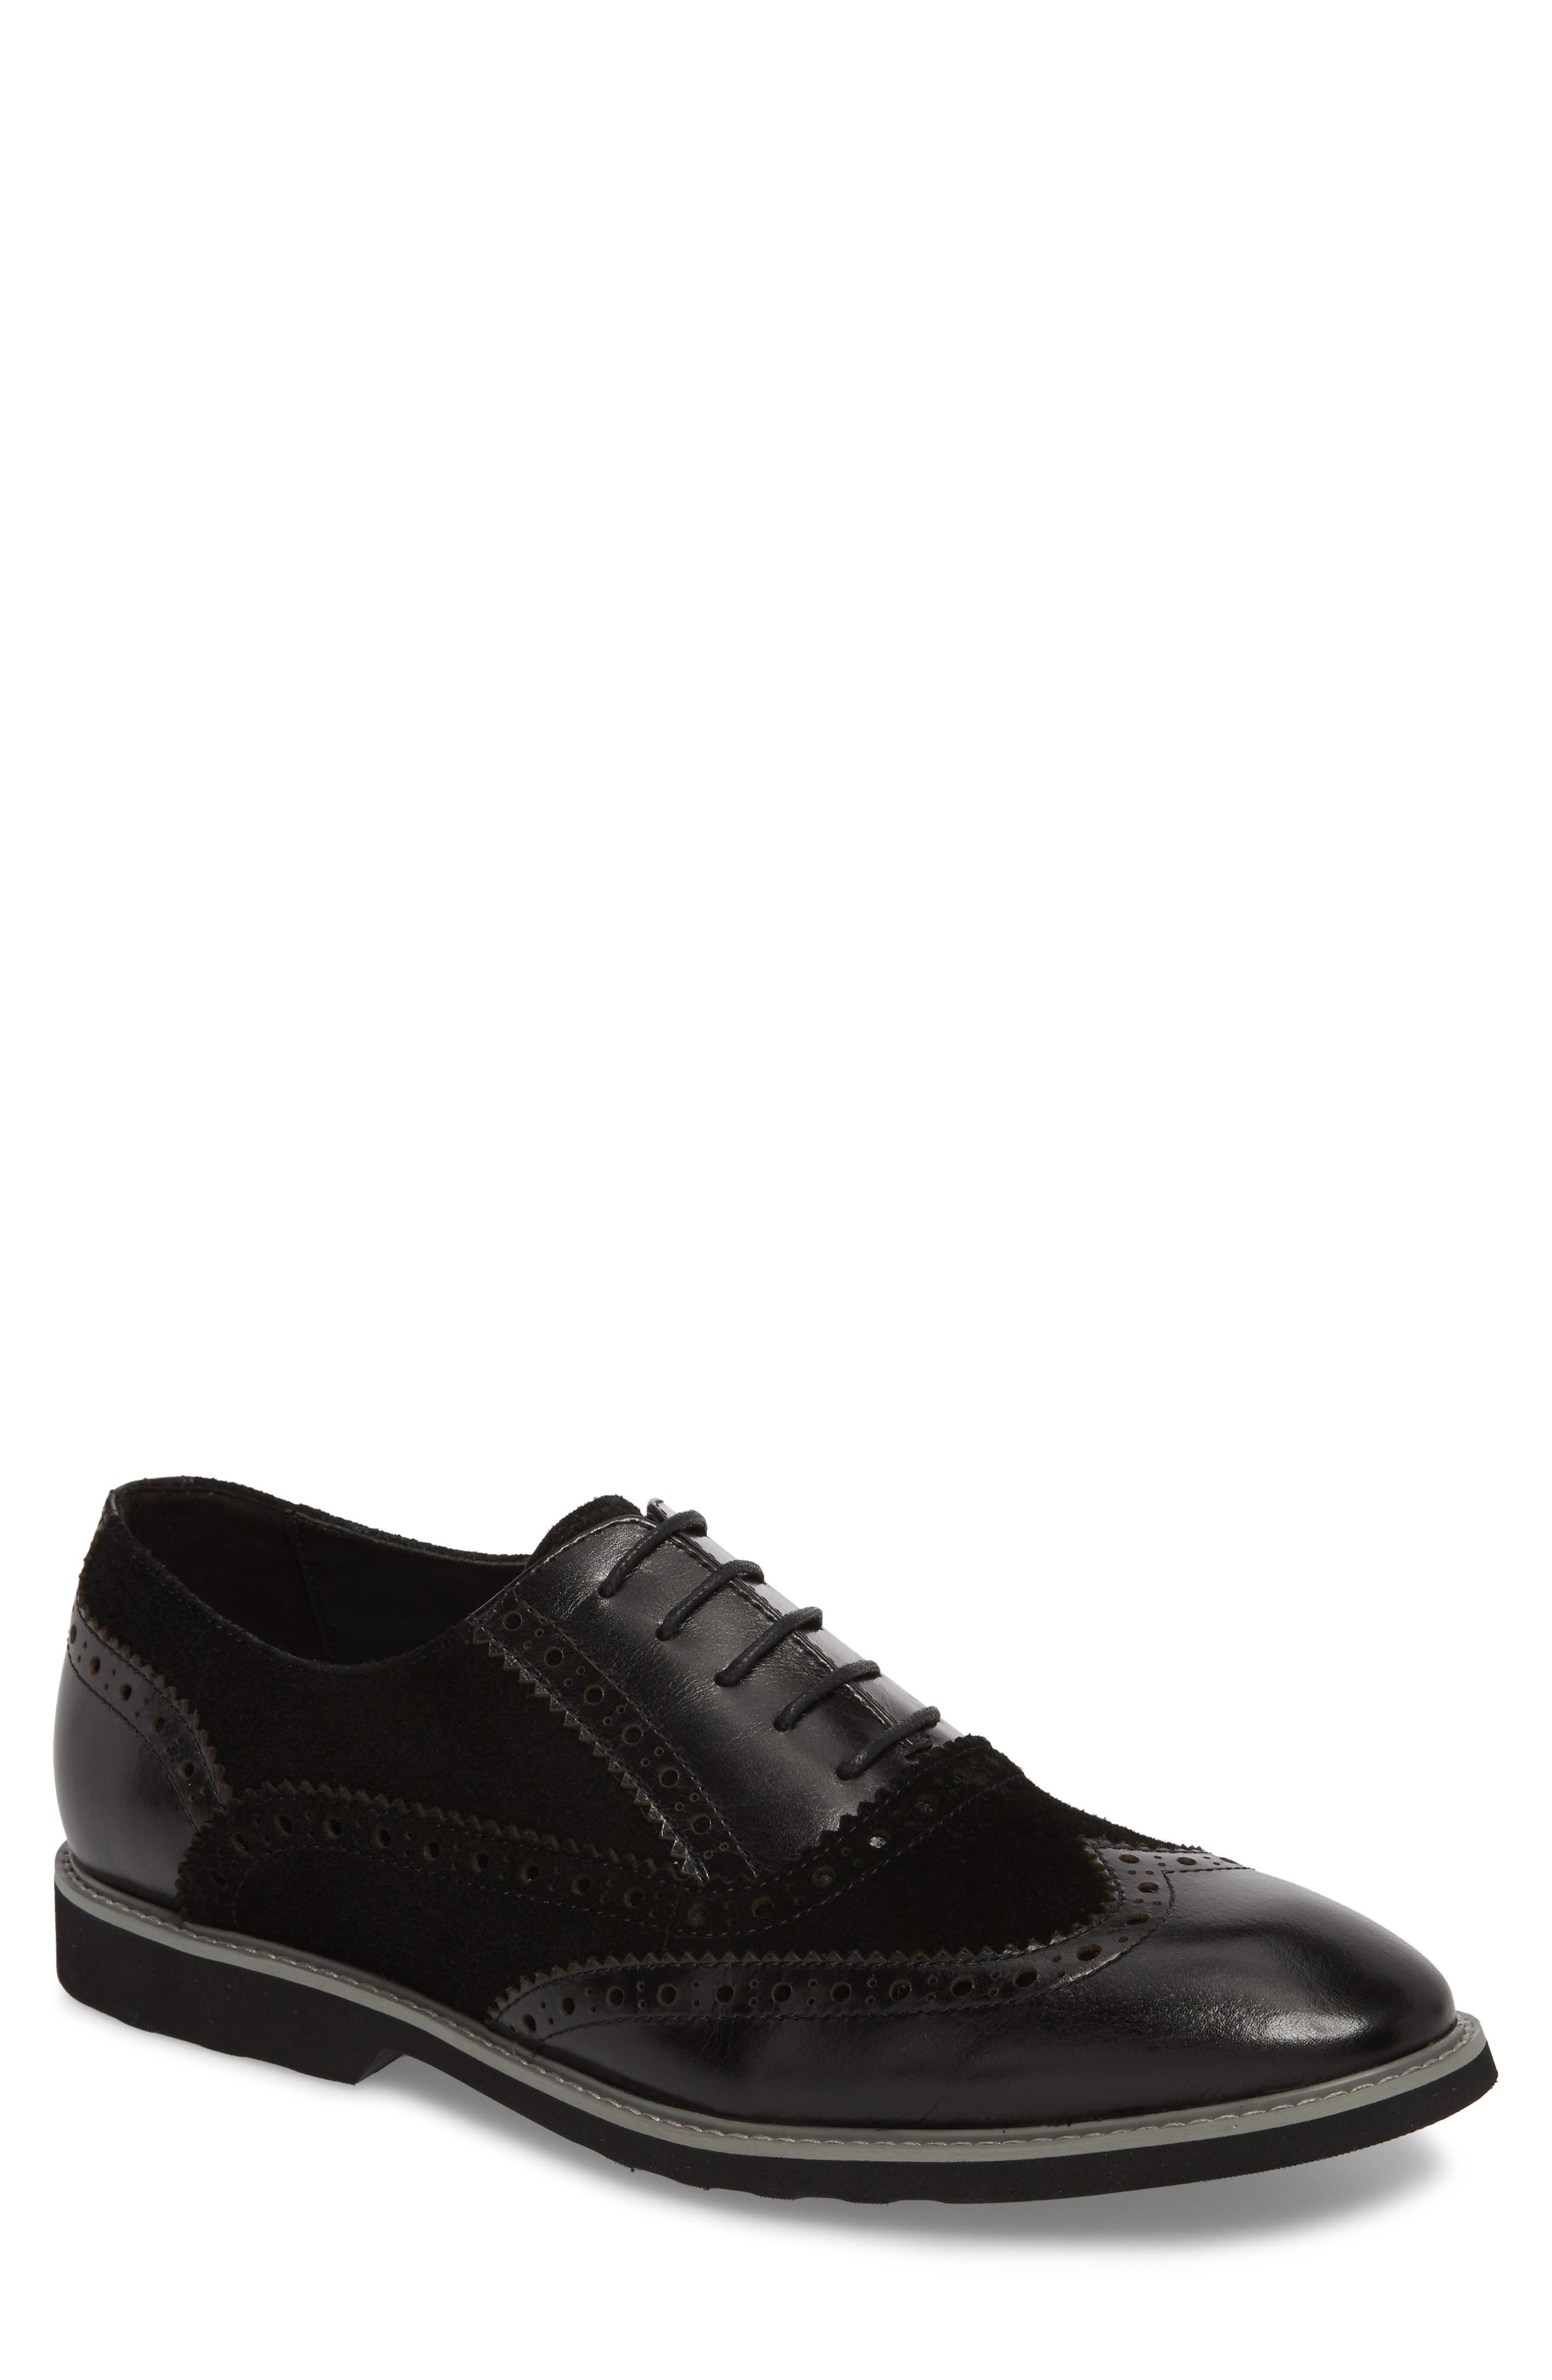 Chorley Wingtip Oxford,                         Main,                         color, Black Leather/ Suede